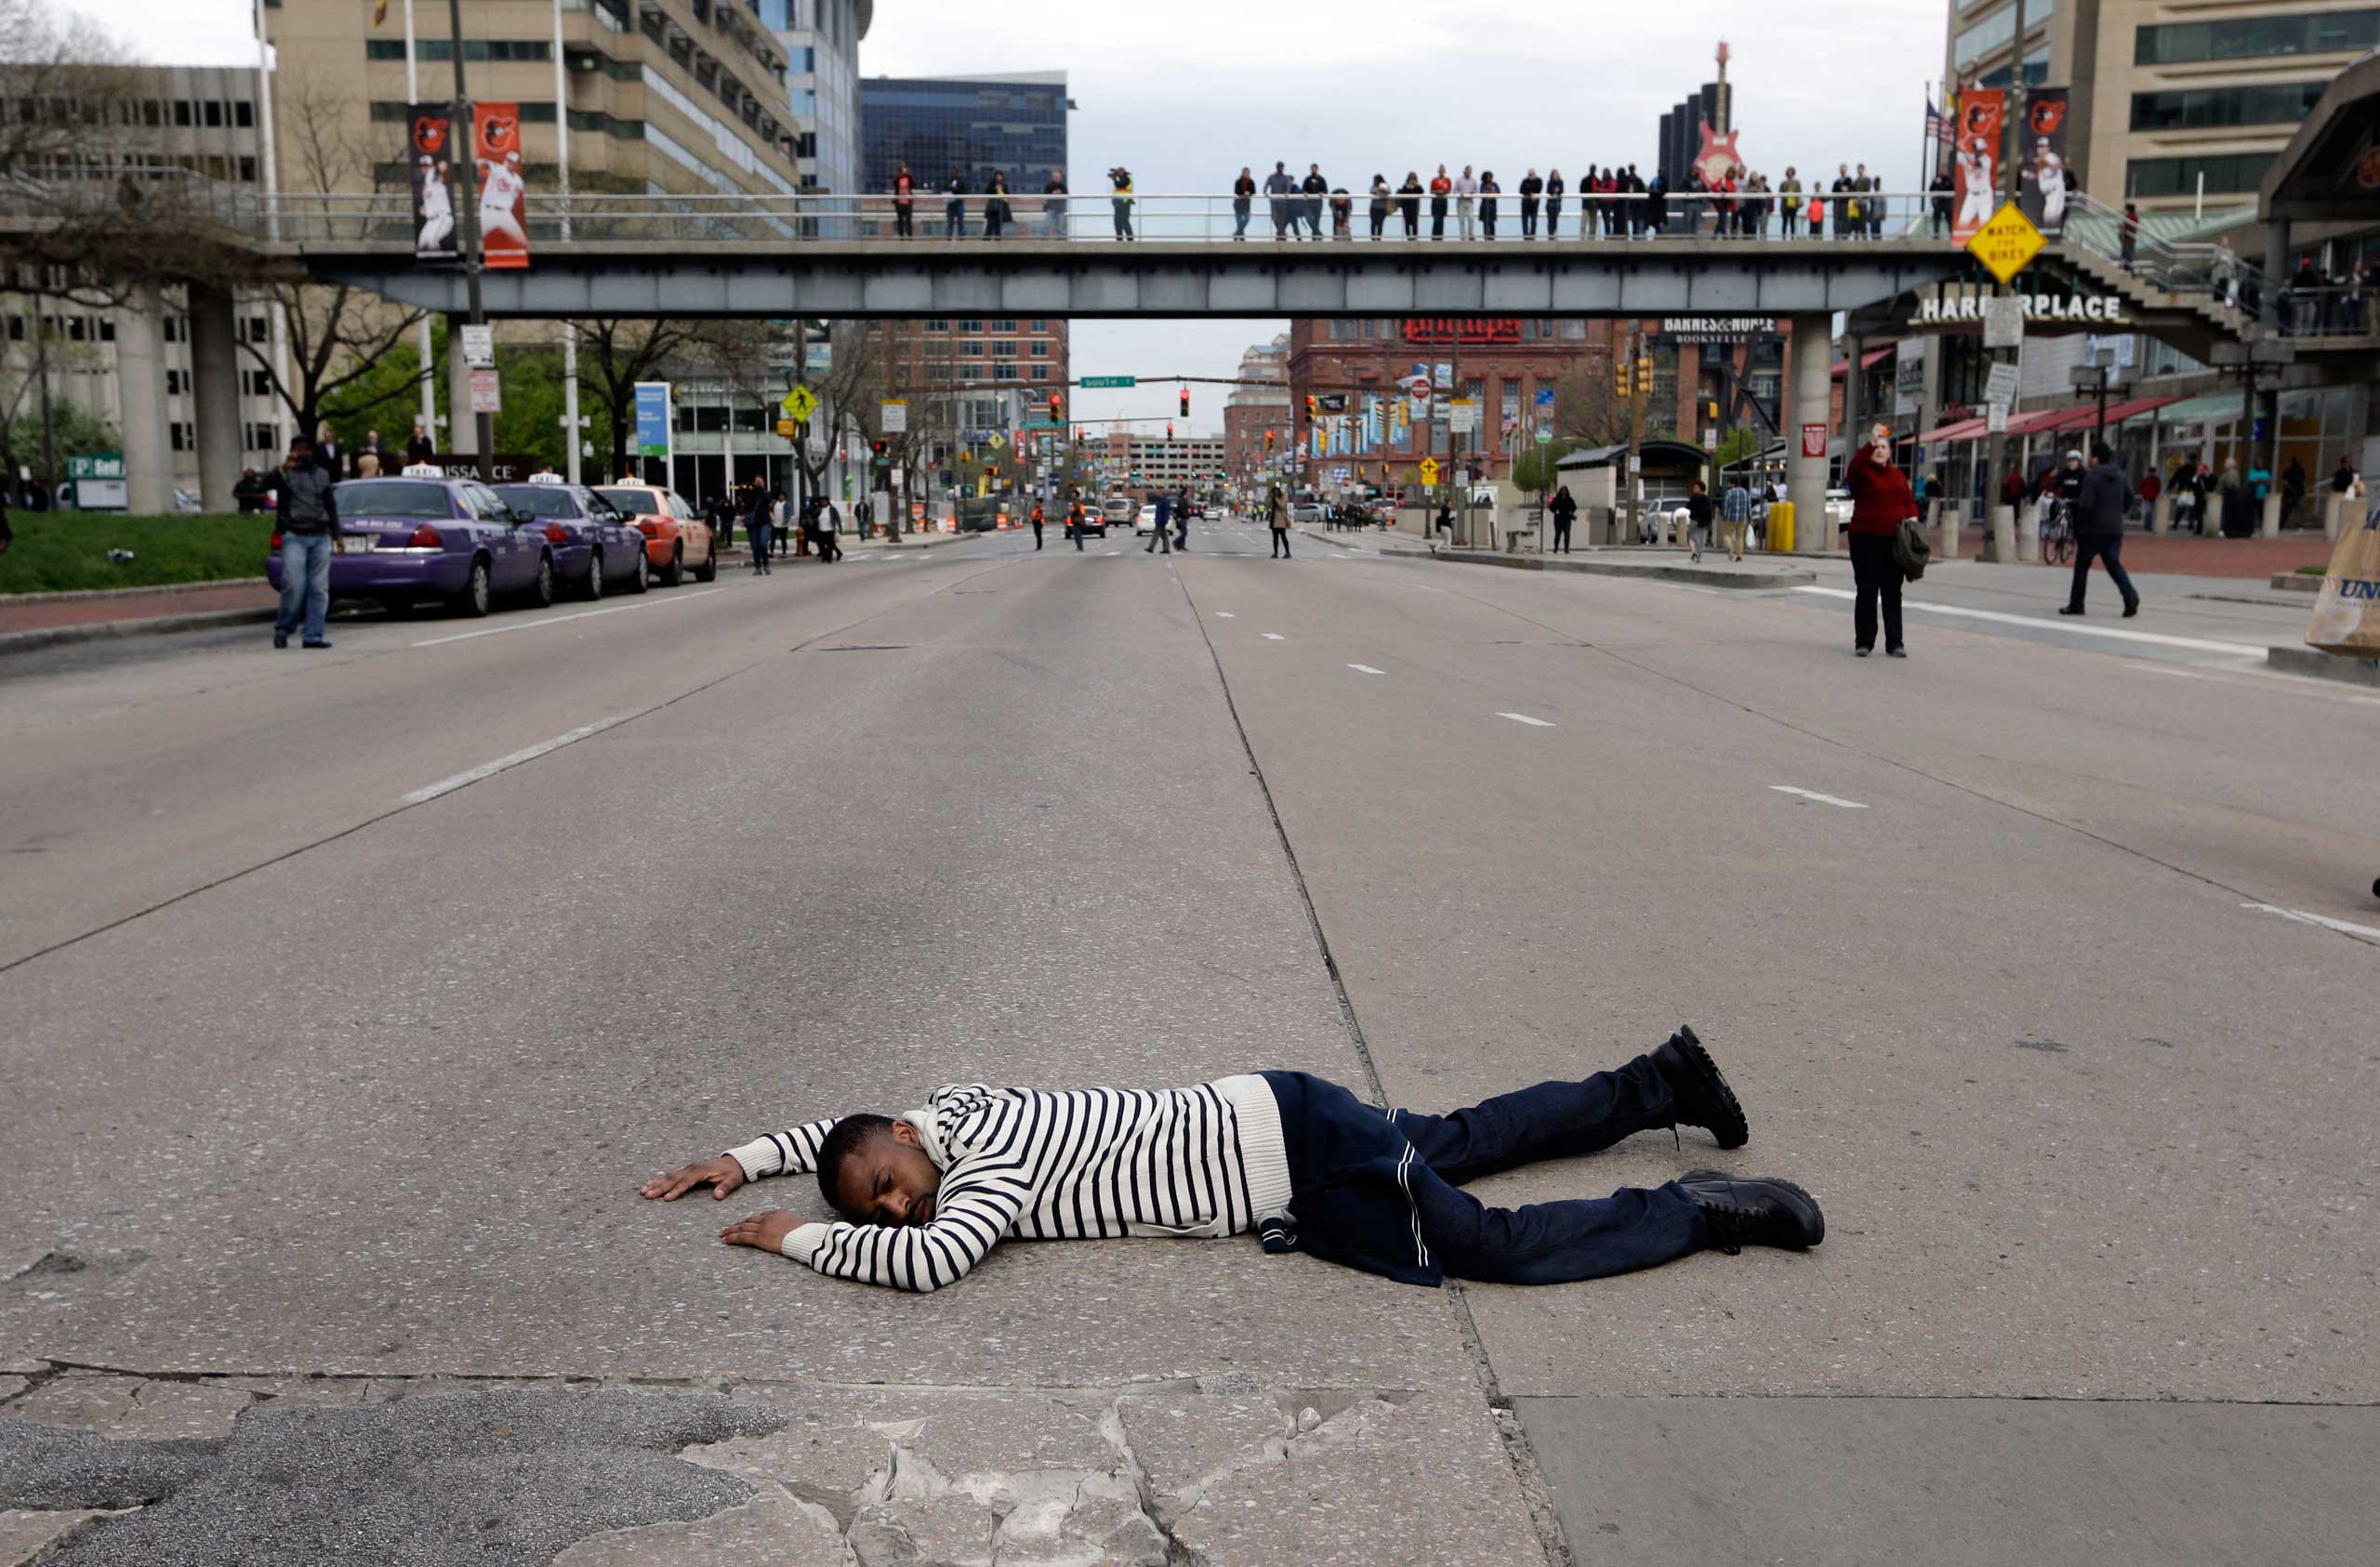 A protestor lays in the middle of a street during a march for Freddie Gray in Baltimore on April 25, 2015.